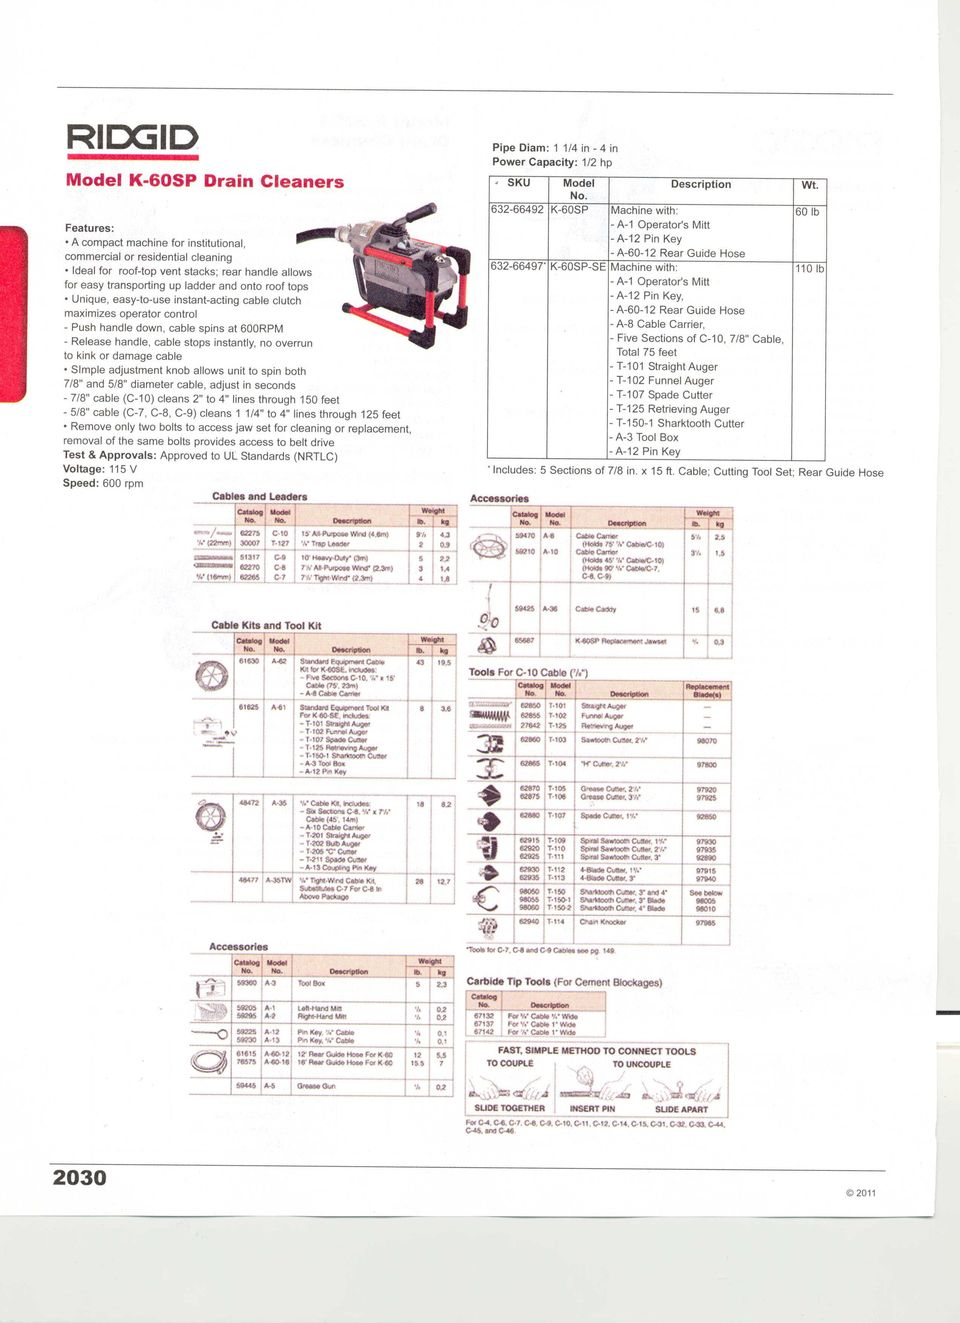 Drain Cleaners Pipe Freezers Cleaning Inspection Equipment Ridgid K 400 Wiring Diagram Simple Adjustment Knob Allows Unit To Spin Both 7 8 And 5